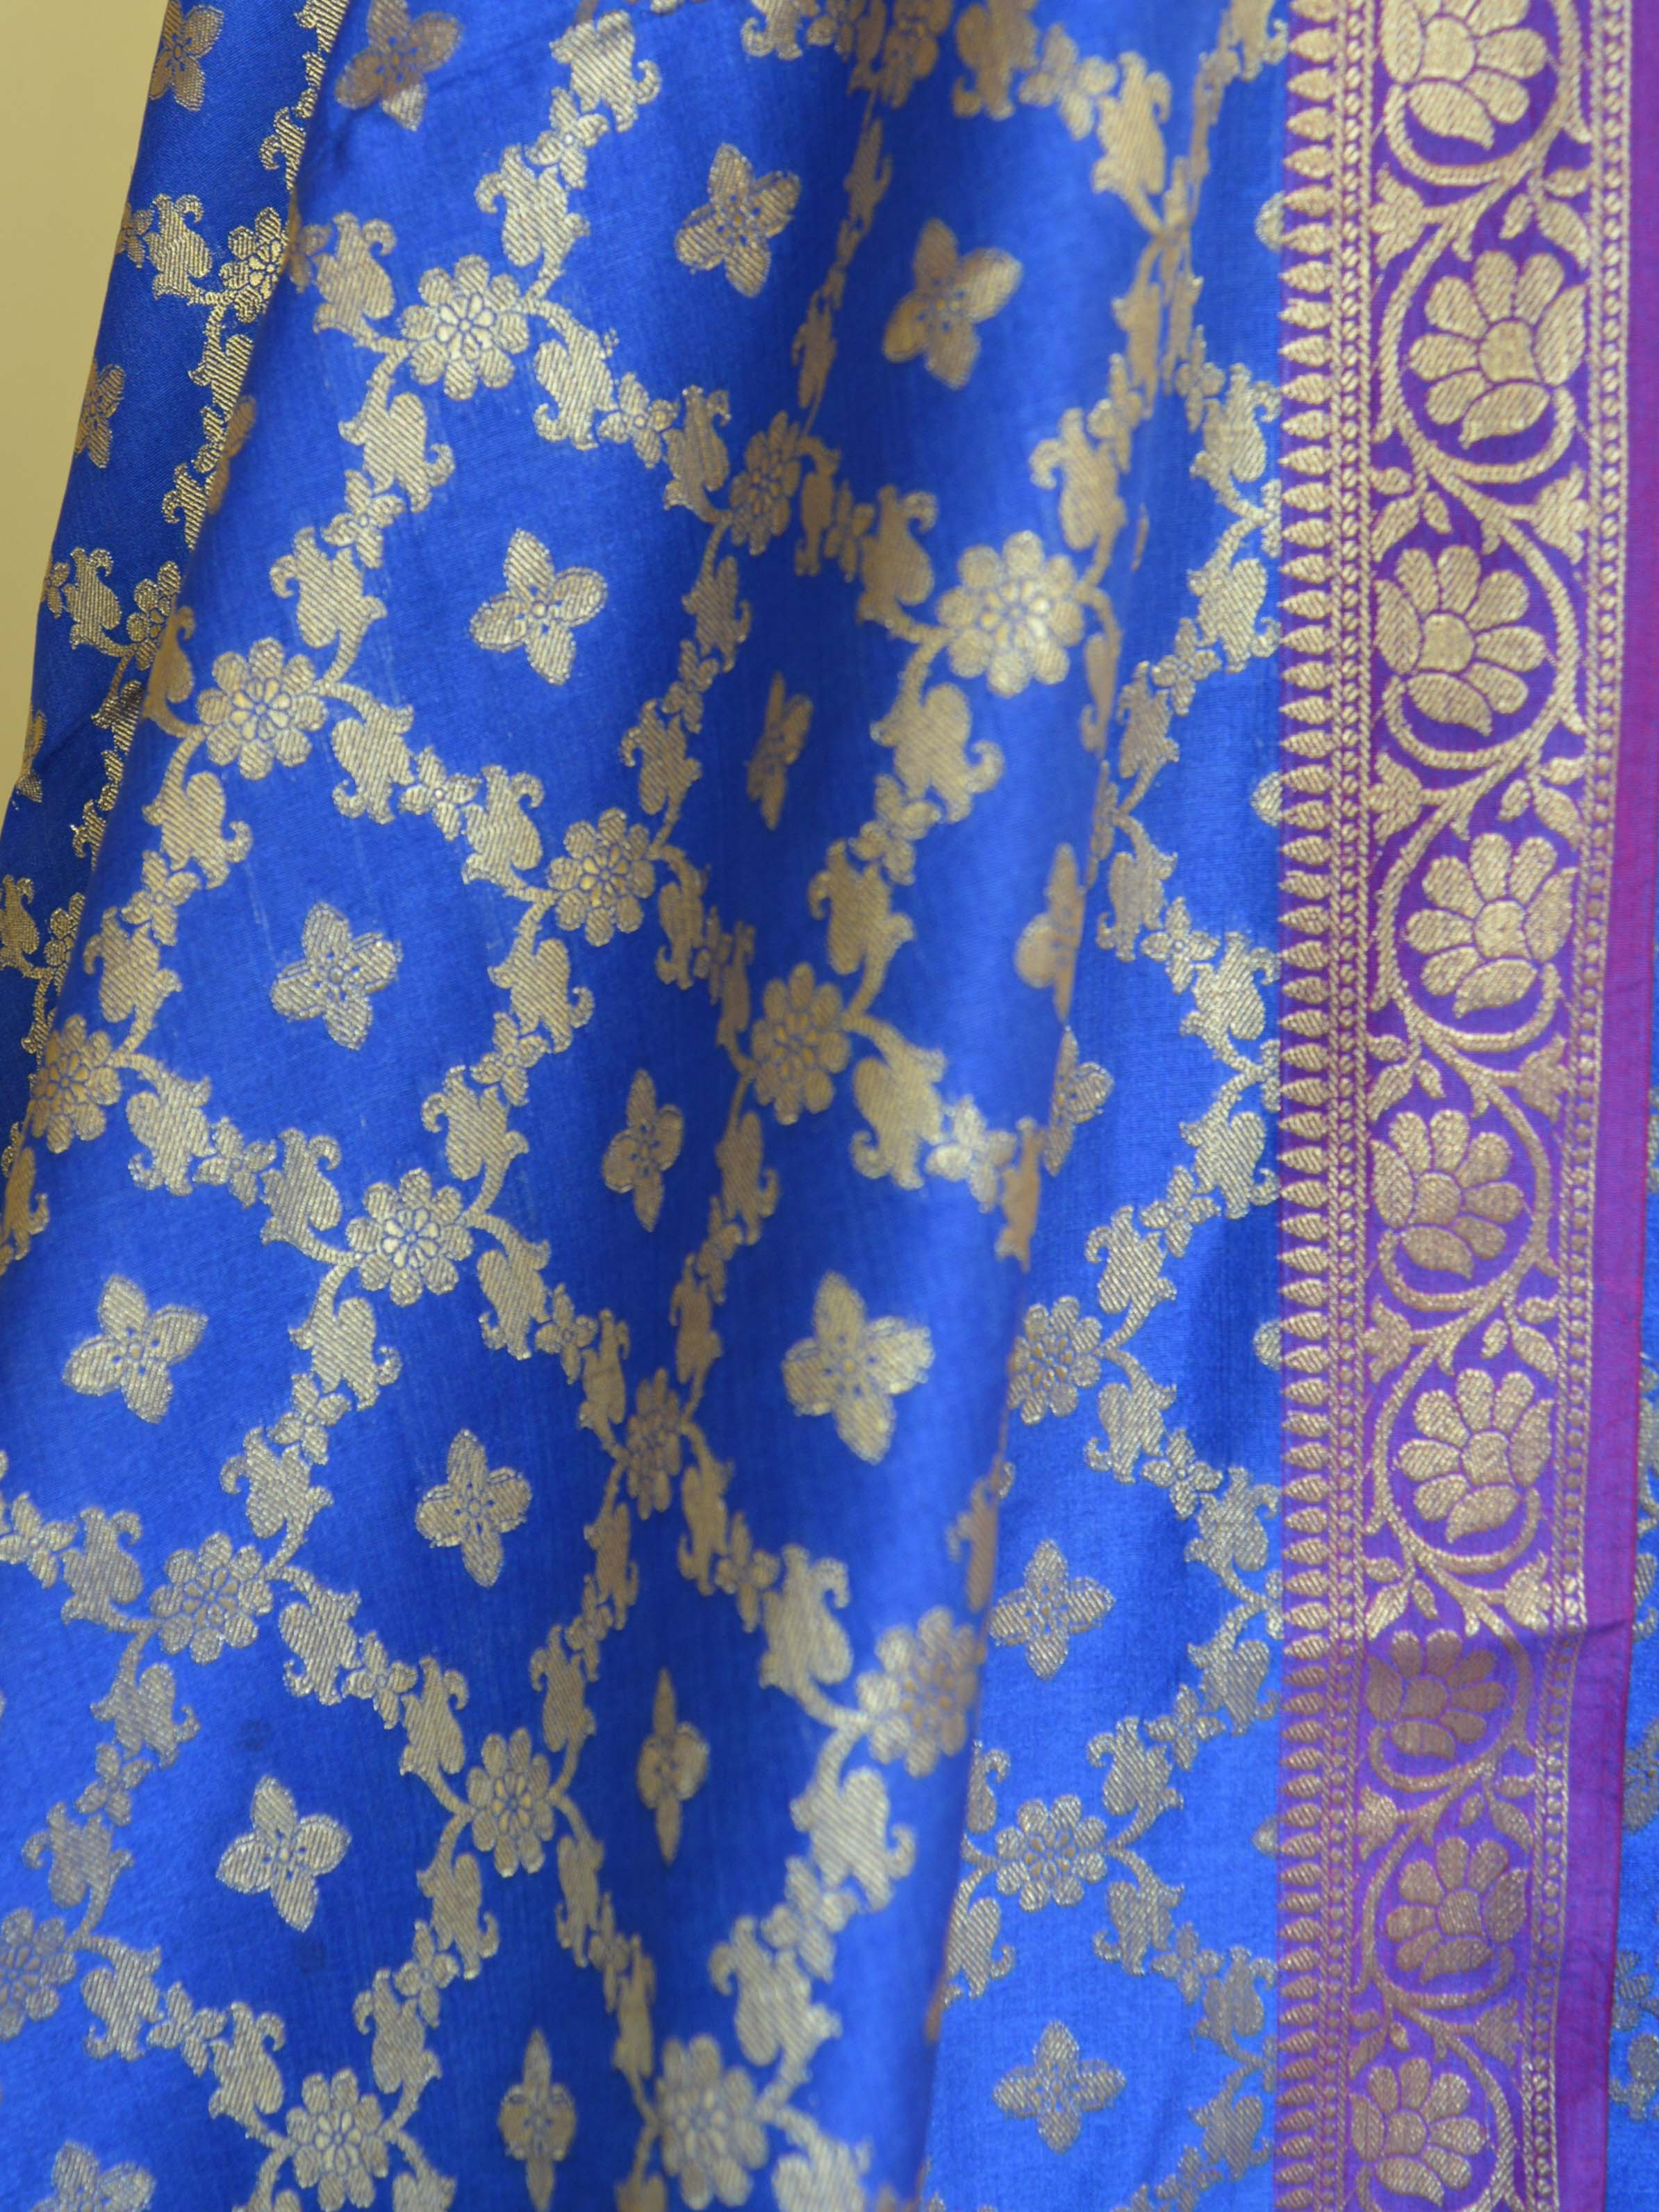 Banarasee Semi Silk Salwar Kameez Fabric With Zari Jaal Dupatta-Royal Blue